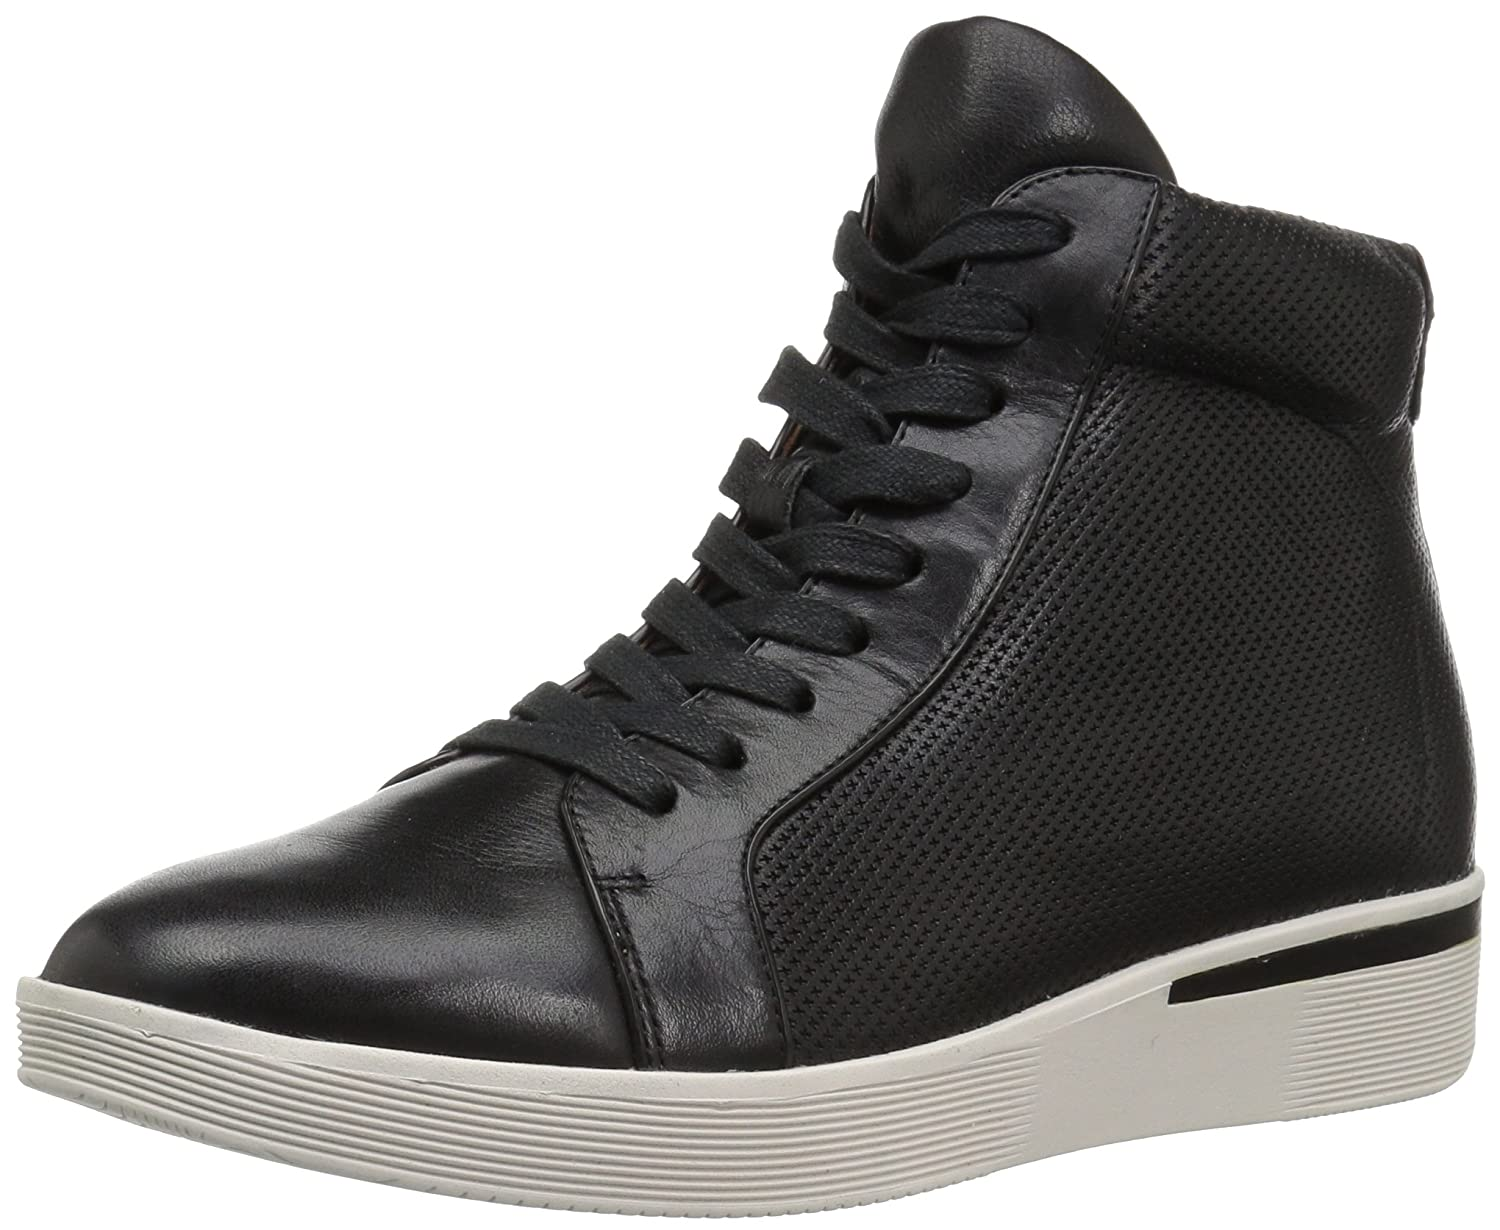 Gentle Souls Women's Helka Hightop Lace-up Sneaker B06XBGVP8X 7 B(M) US|Black